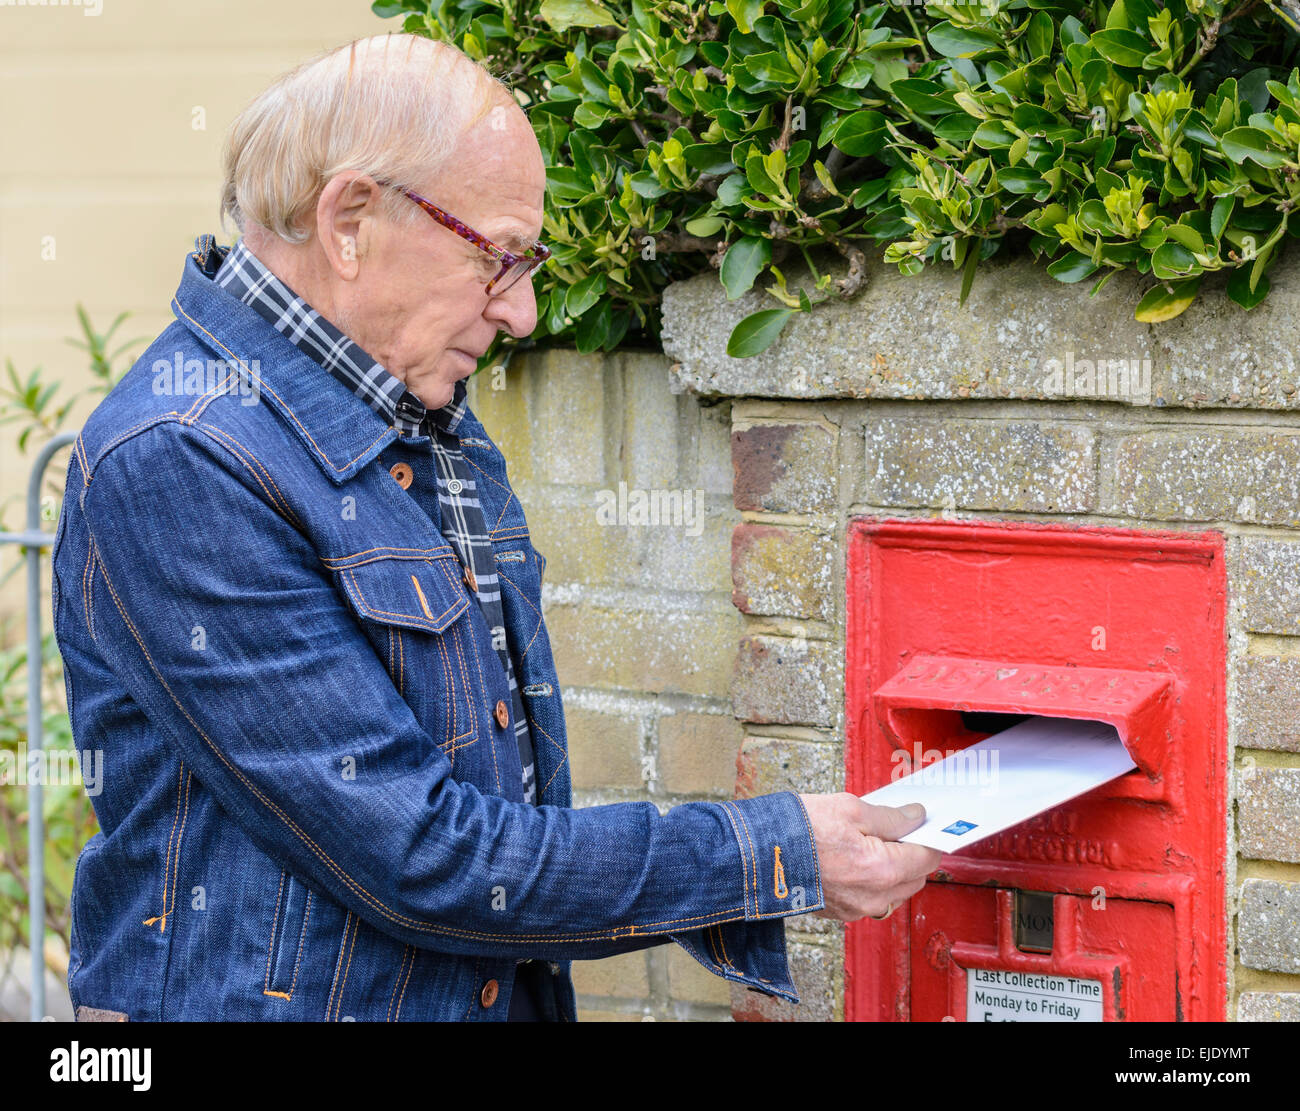 Elderly man posting a letter in a Royal Mail wall mounted letter box, in England, UK. - Stock Image